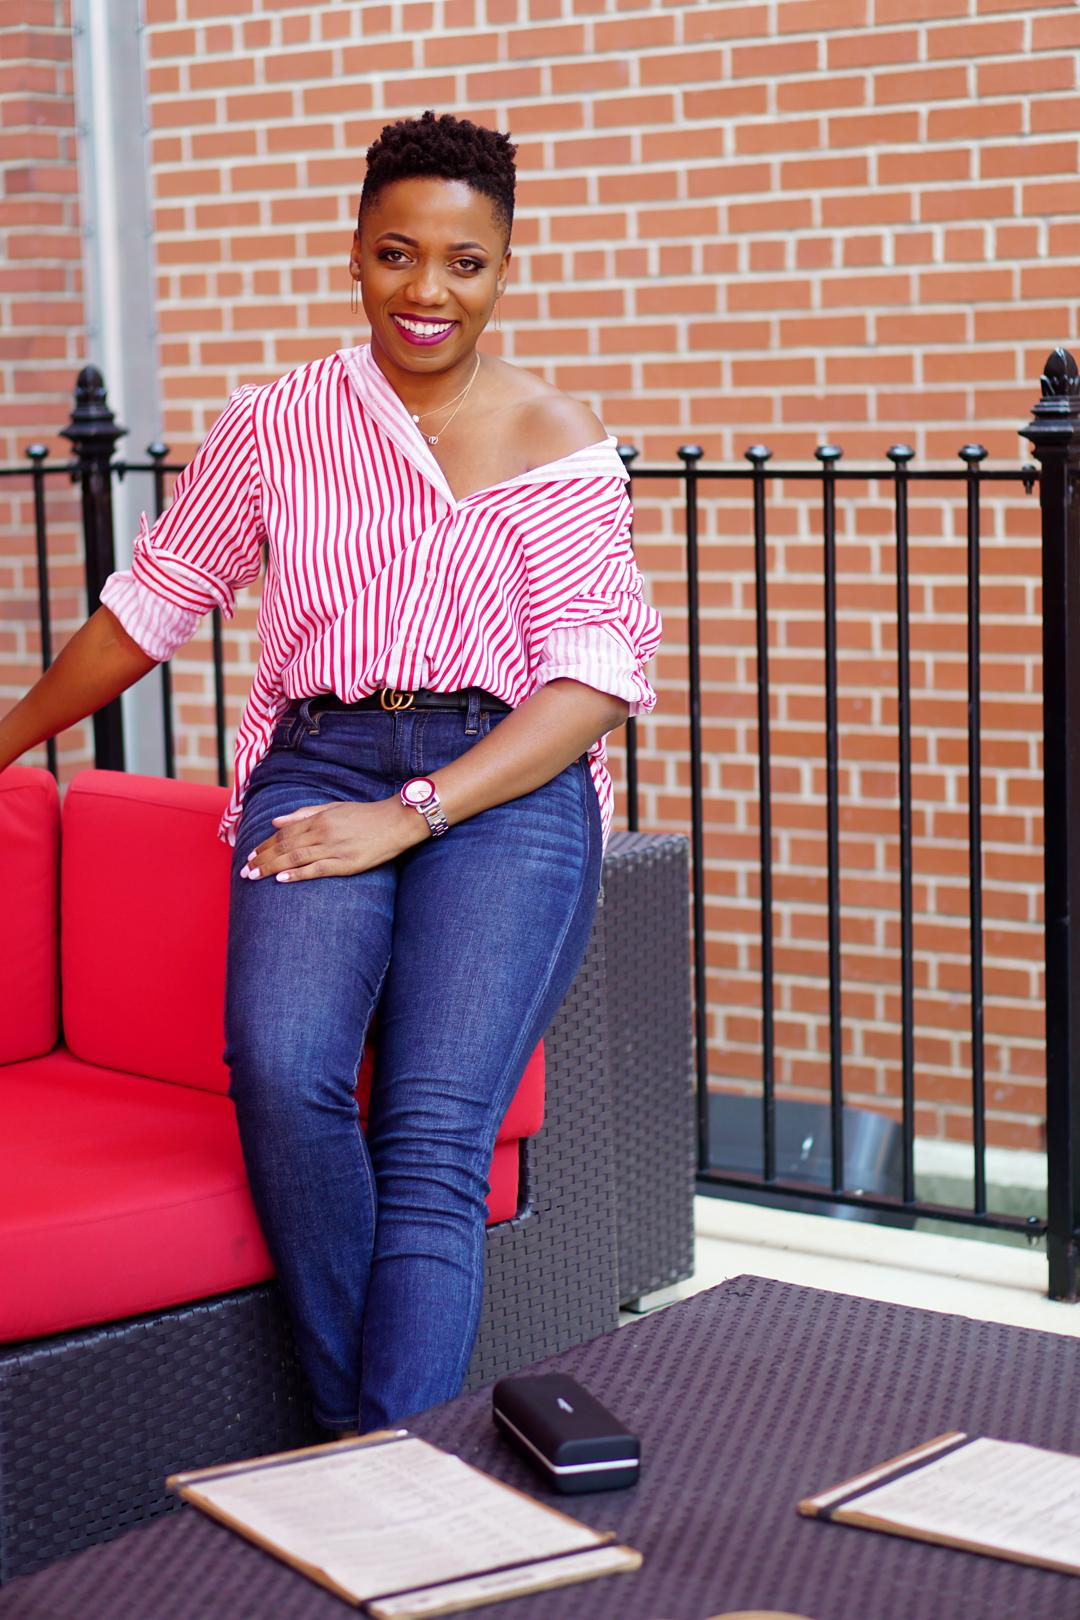 Button shirt style hack